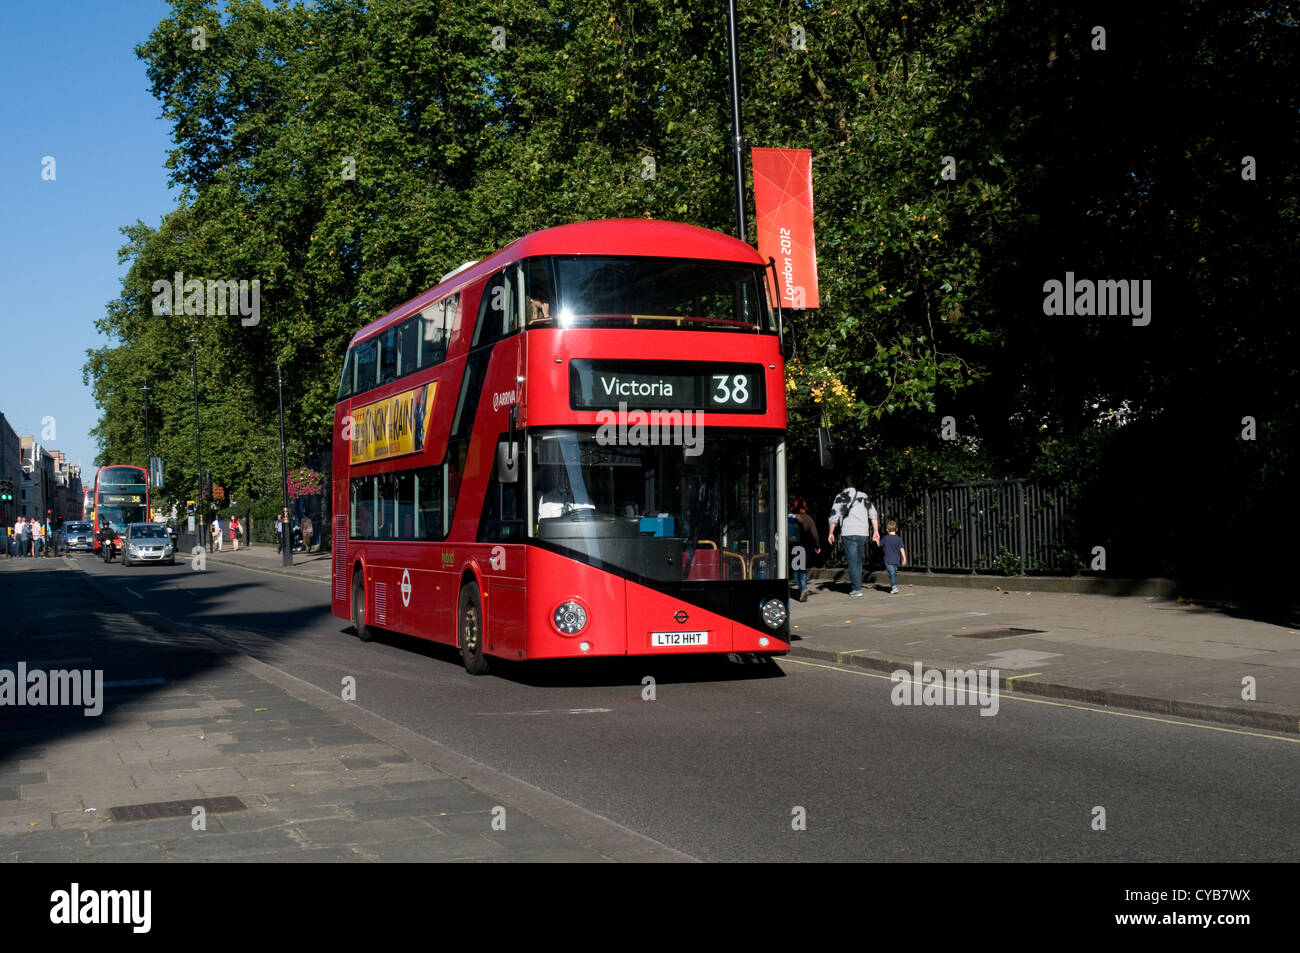 One of the prototype New bus for London travelling along Piccadilly towards Victoria. The buses are built by Wrightbus, - Stock Image